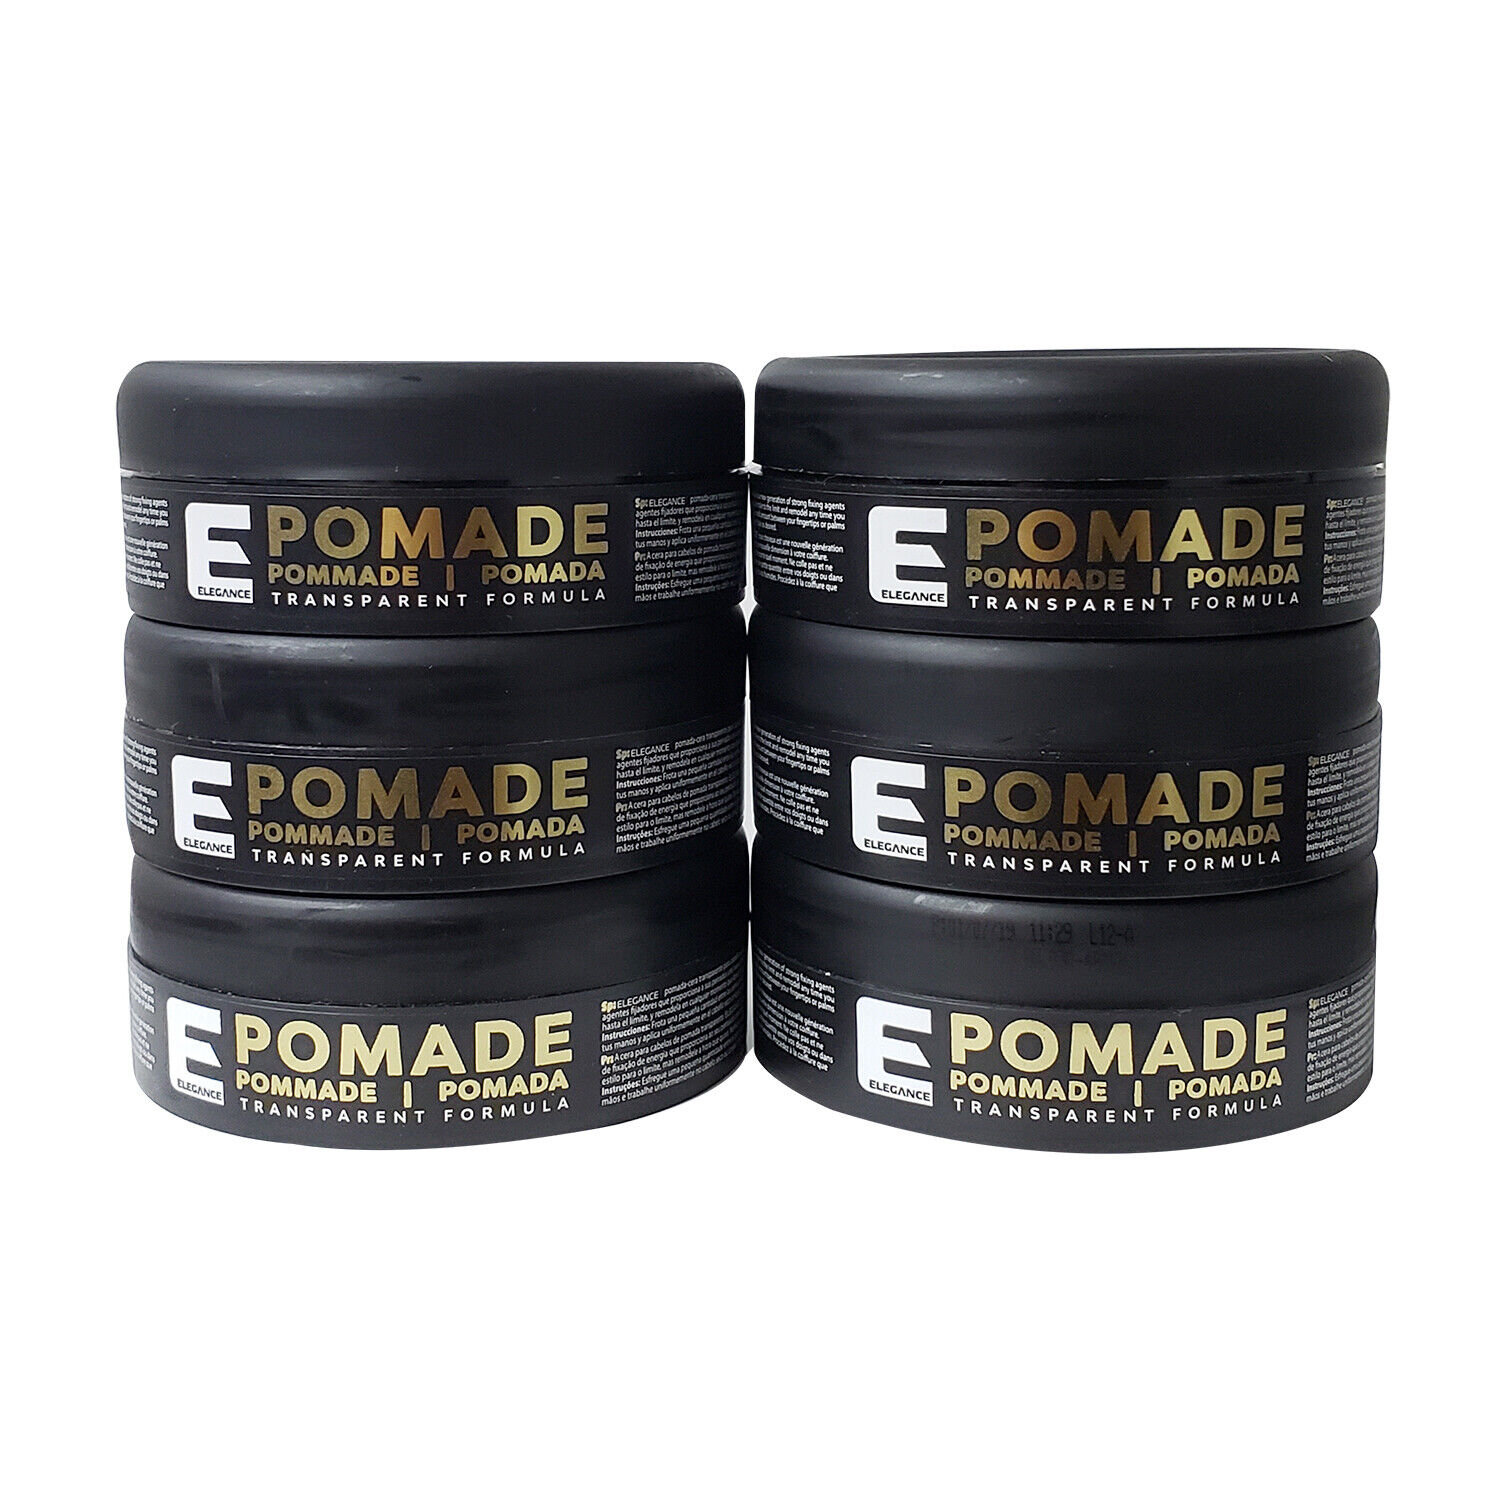 Elegance Transparent Pomade Hair Wax 6 Pack (FREE SHIPPING!!!) Hair Care & Styling